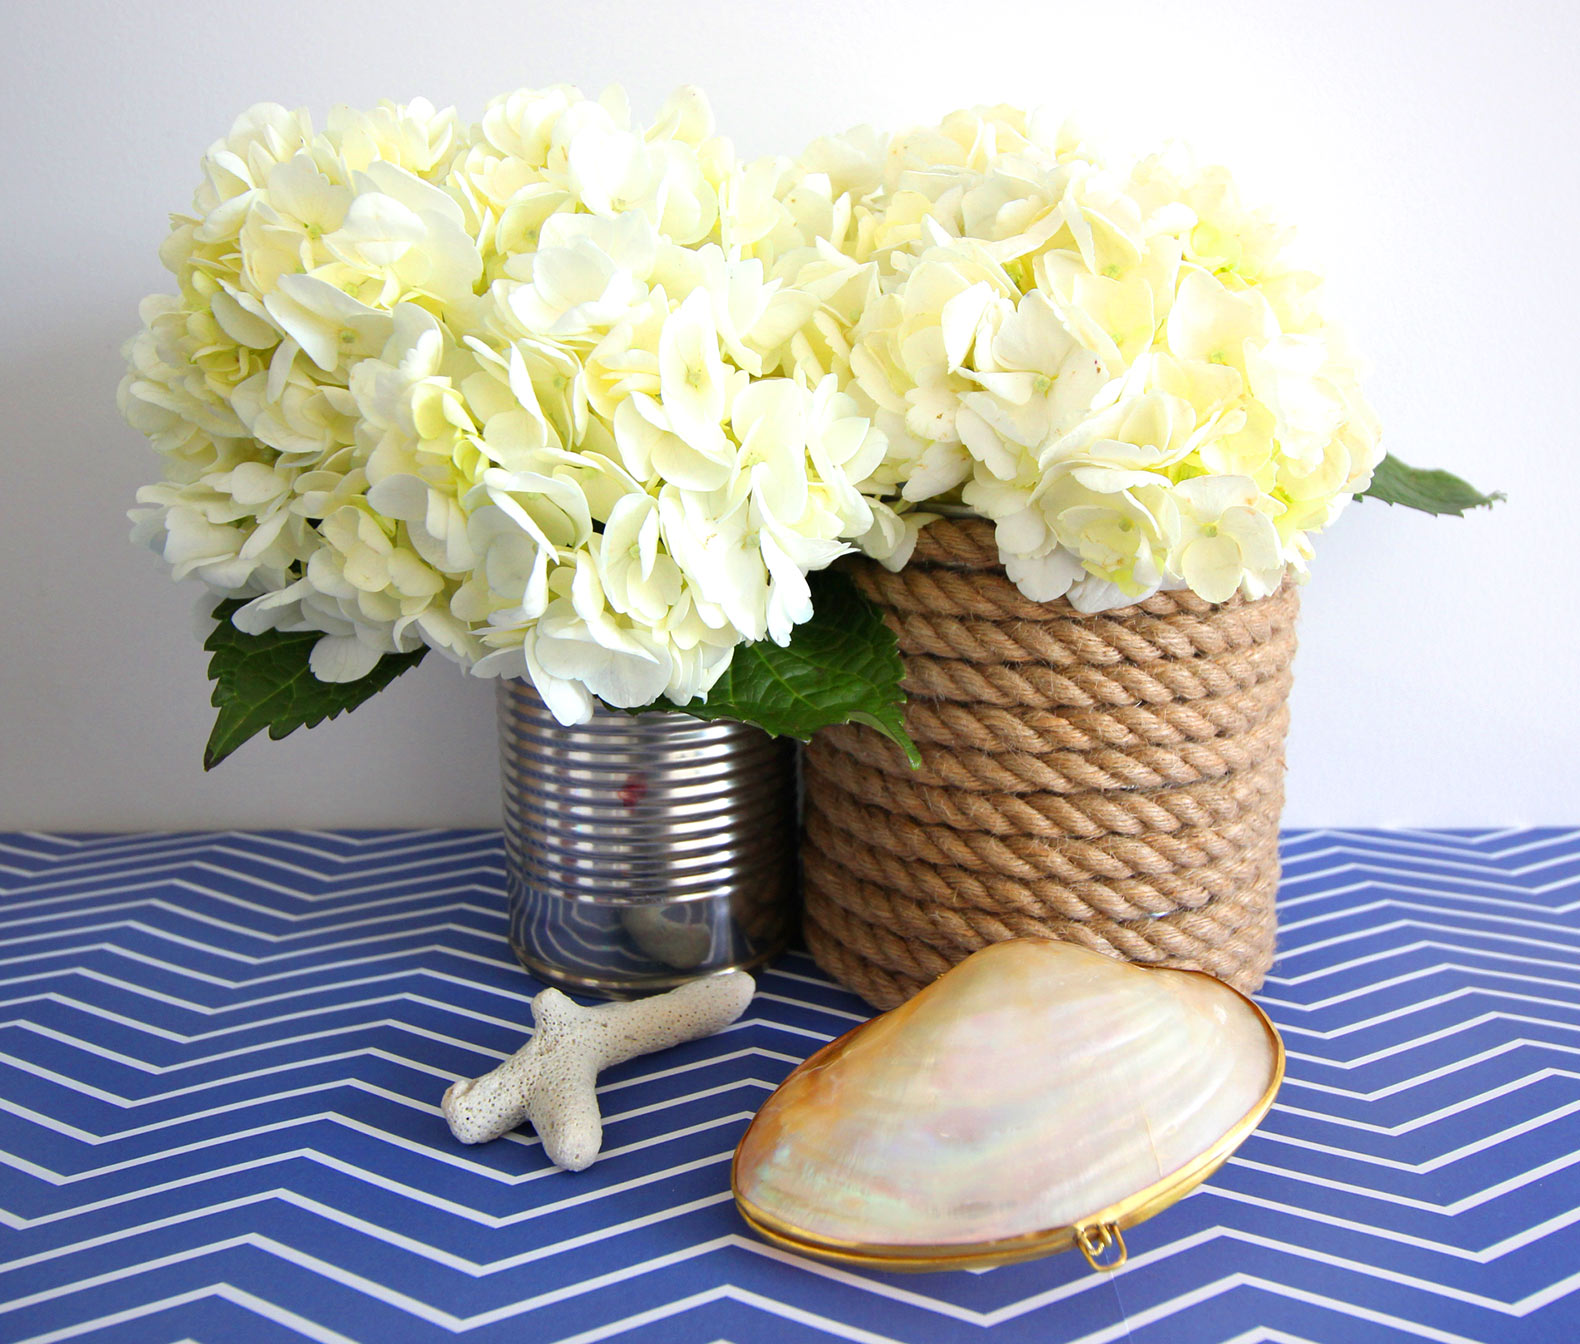 How to make diy rope wrapped vases with nautical flair view in gallery rope wrapped vases diy nautical reviewsmspy